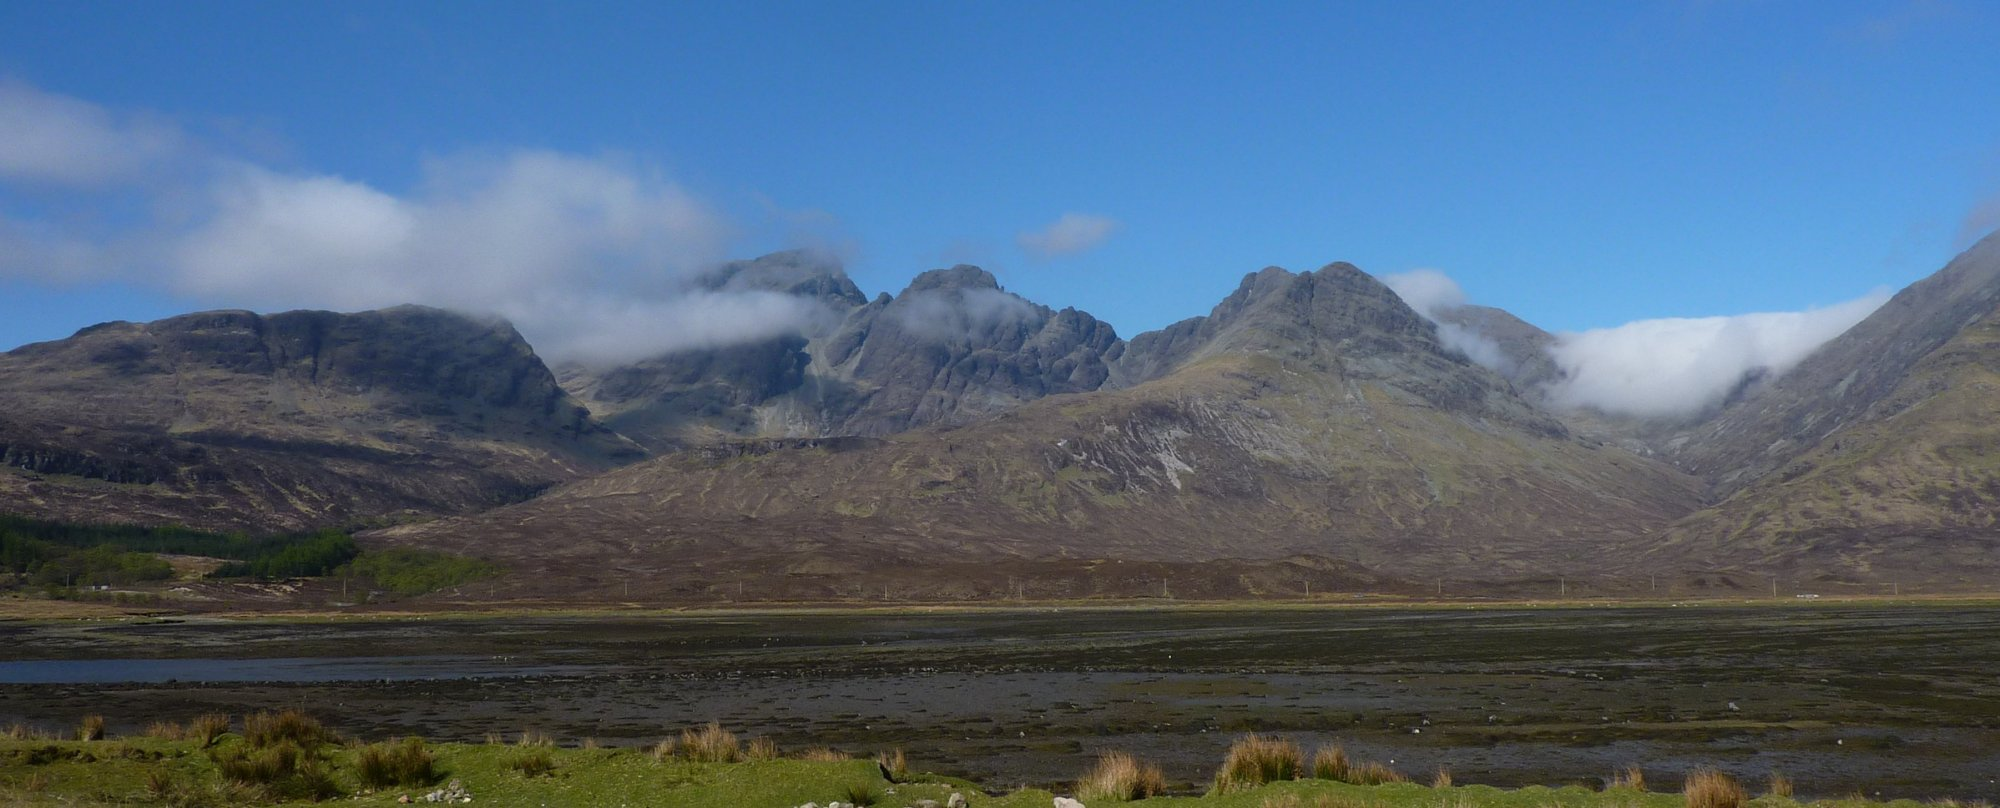 Bla Bheinn from the other side of Loch Slapin, looking even more impressive